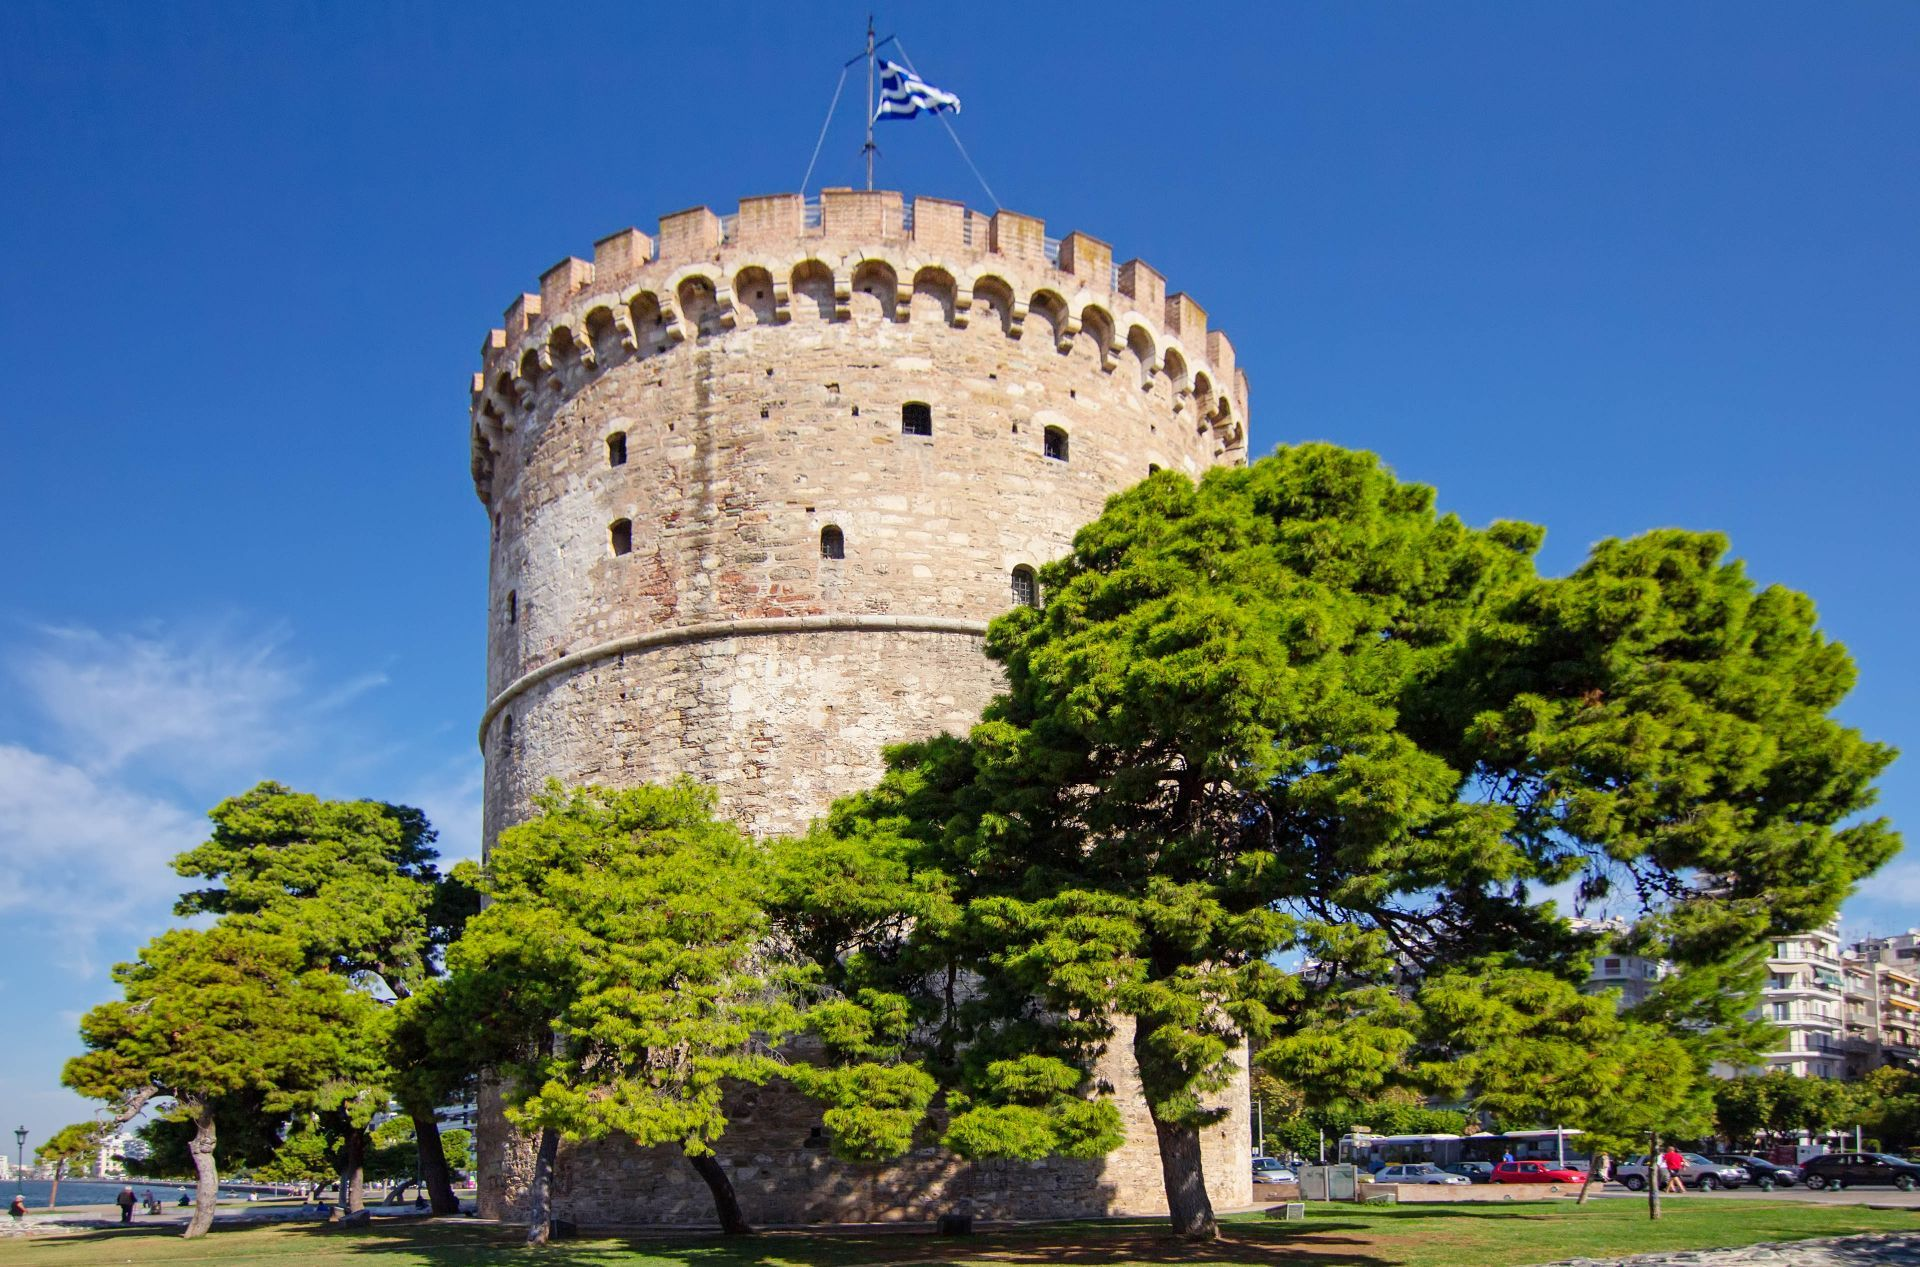 Macedonia Greece: The White Tower of Thessaloniki